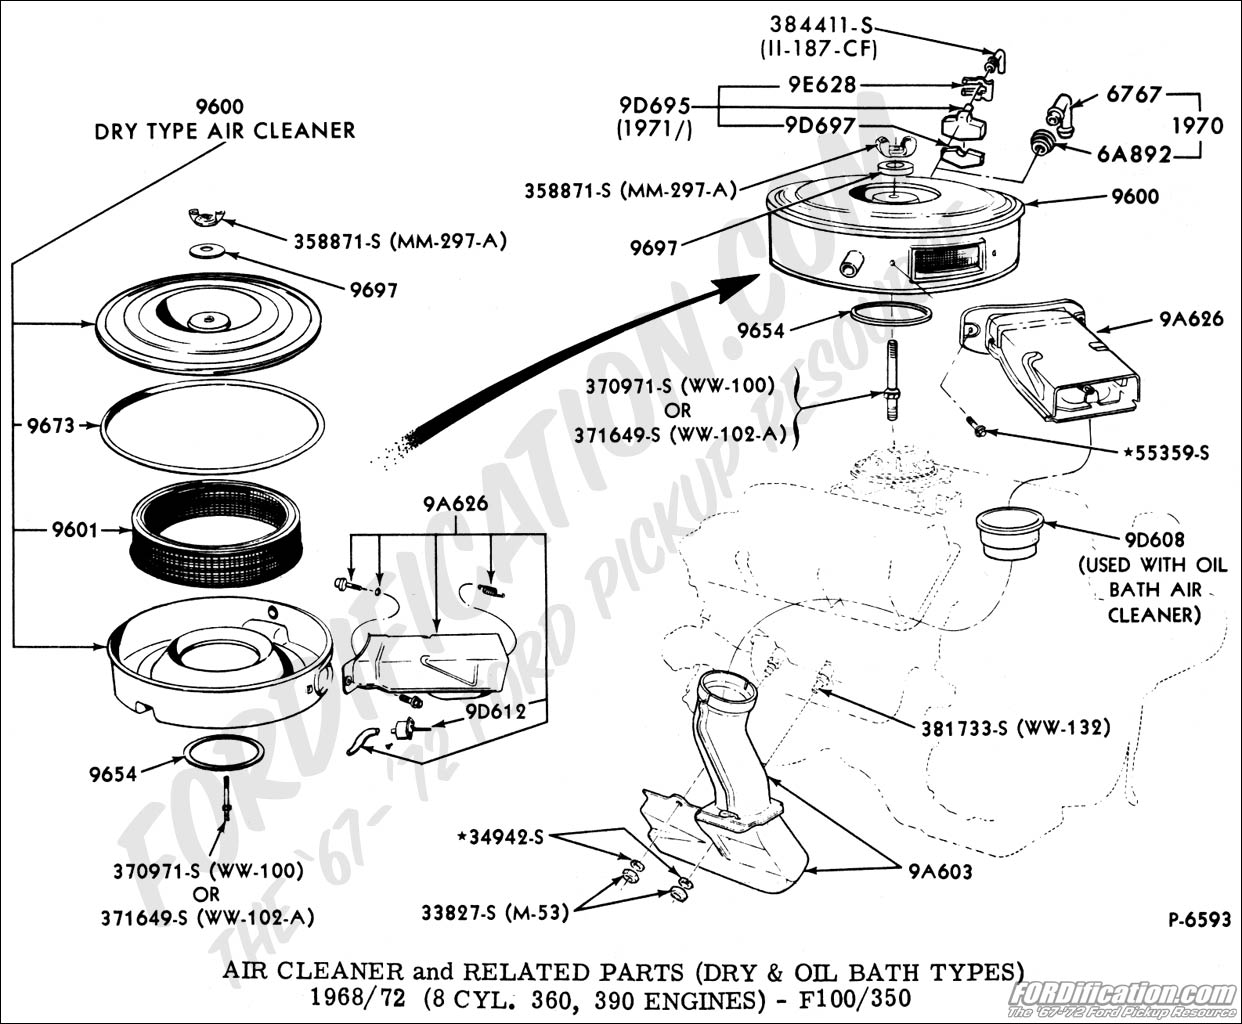 1970 chevy truck wiring diagram 1970 discover your wiring wiring diagram